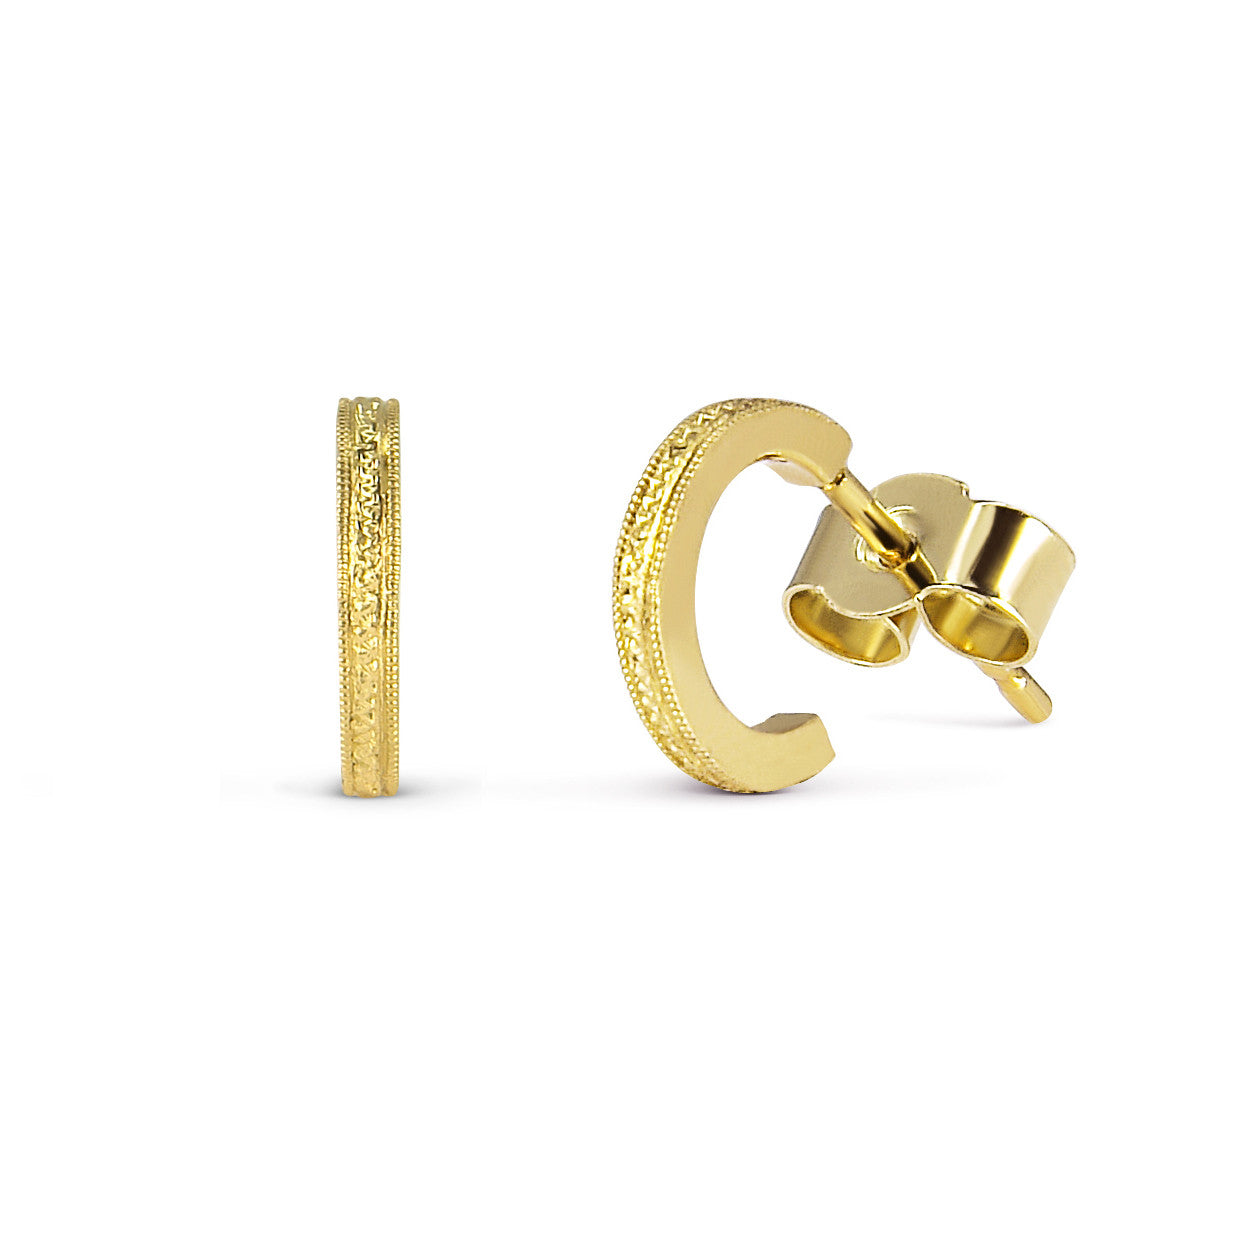 Eternity Engraved Ethical Hoop Earrings. 18ct Fairmined Ecological Gold